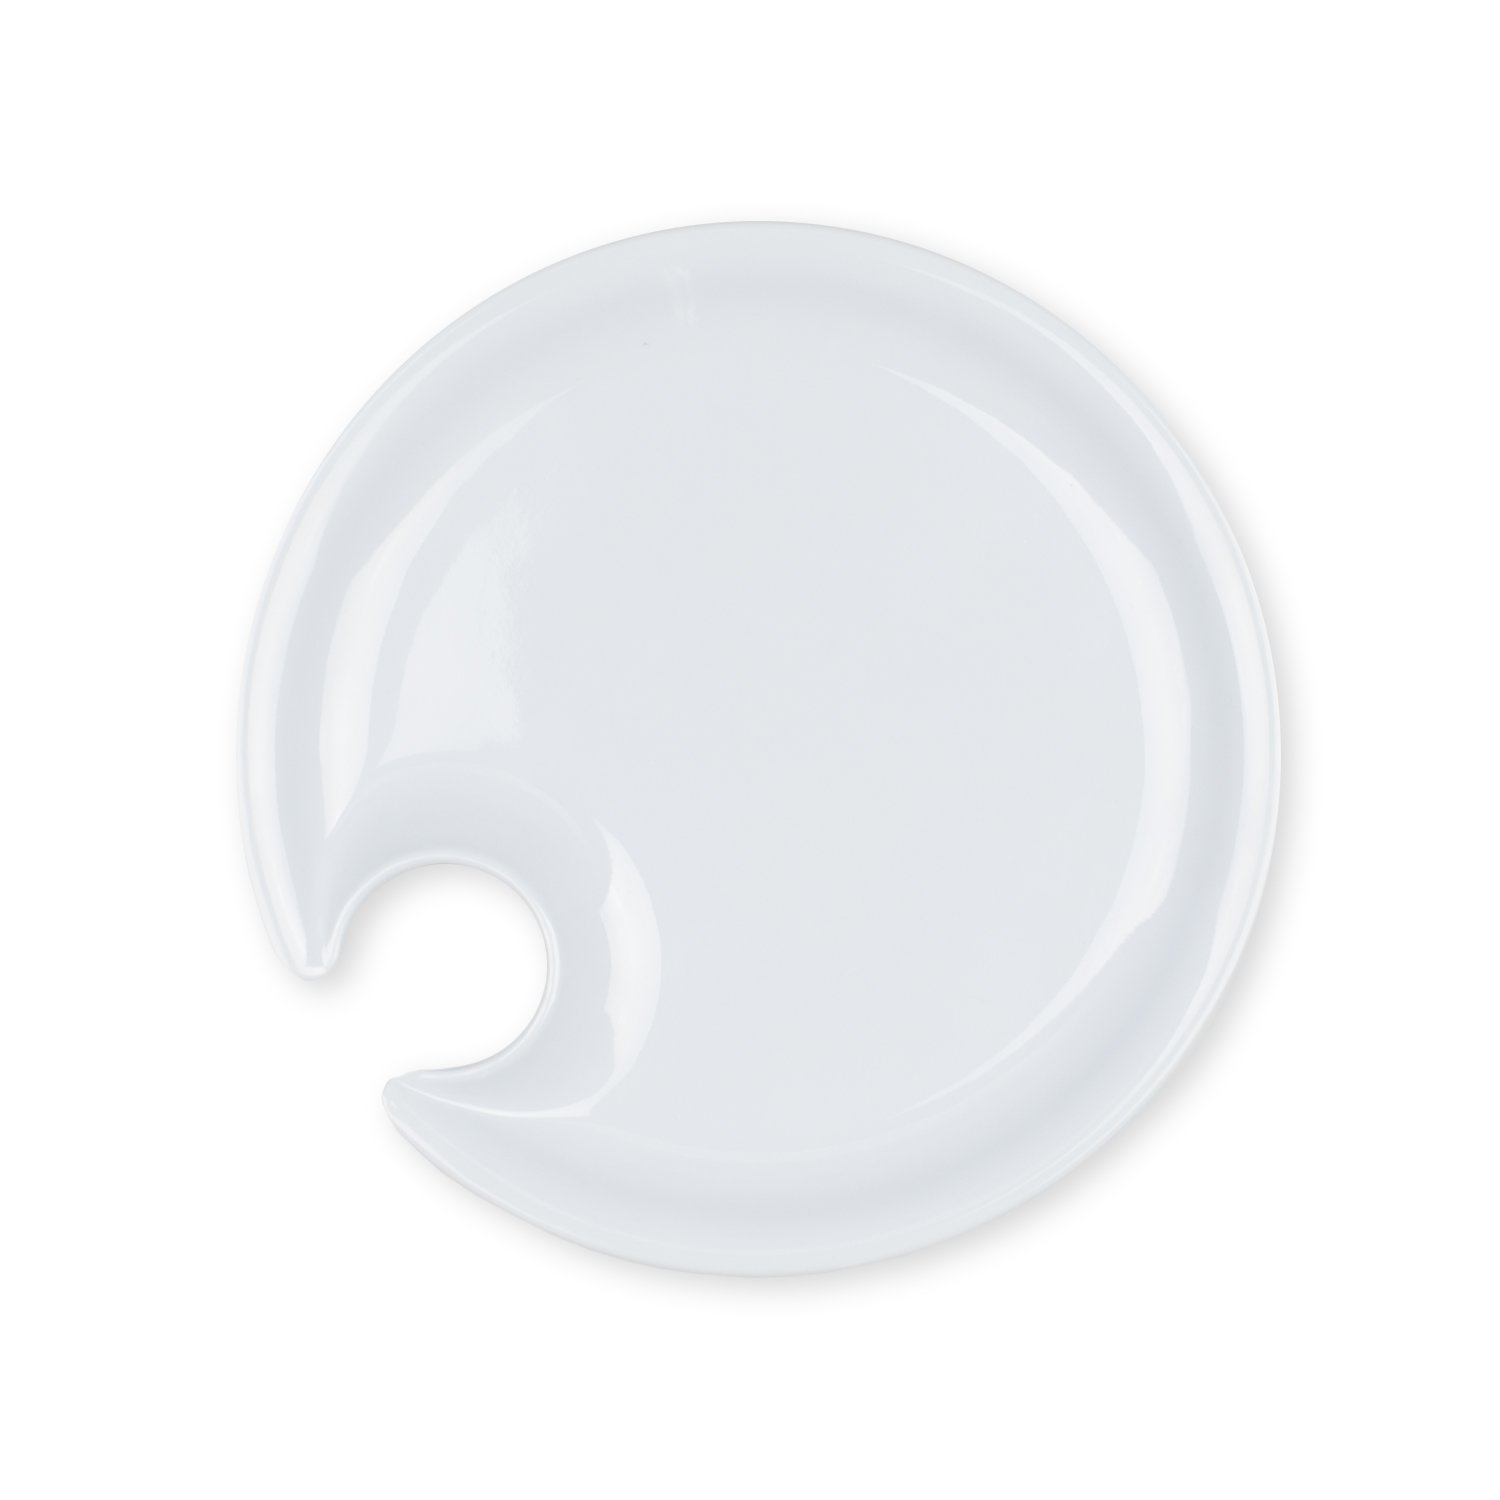 """Set of 4 Round Reusable Appetizer Plates with Glass Holder White Lightweight and Dishwasher Safe Wedding Perfect for Entertaining - Birthday Graduation 7/""""//18cm Bridal Shower or Dinner Party"""